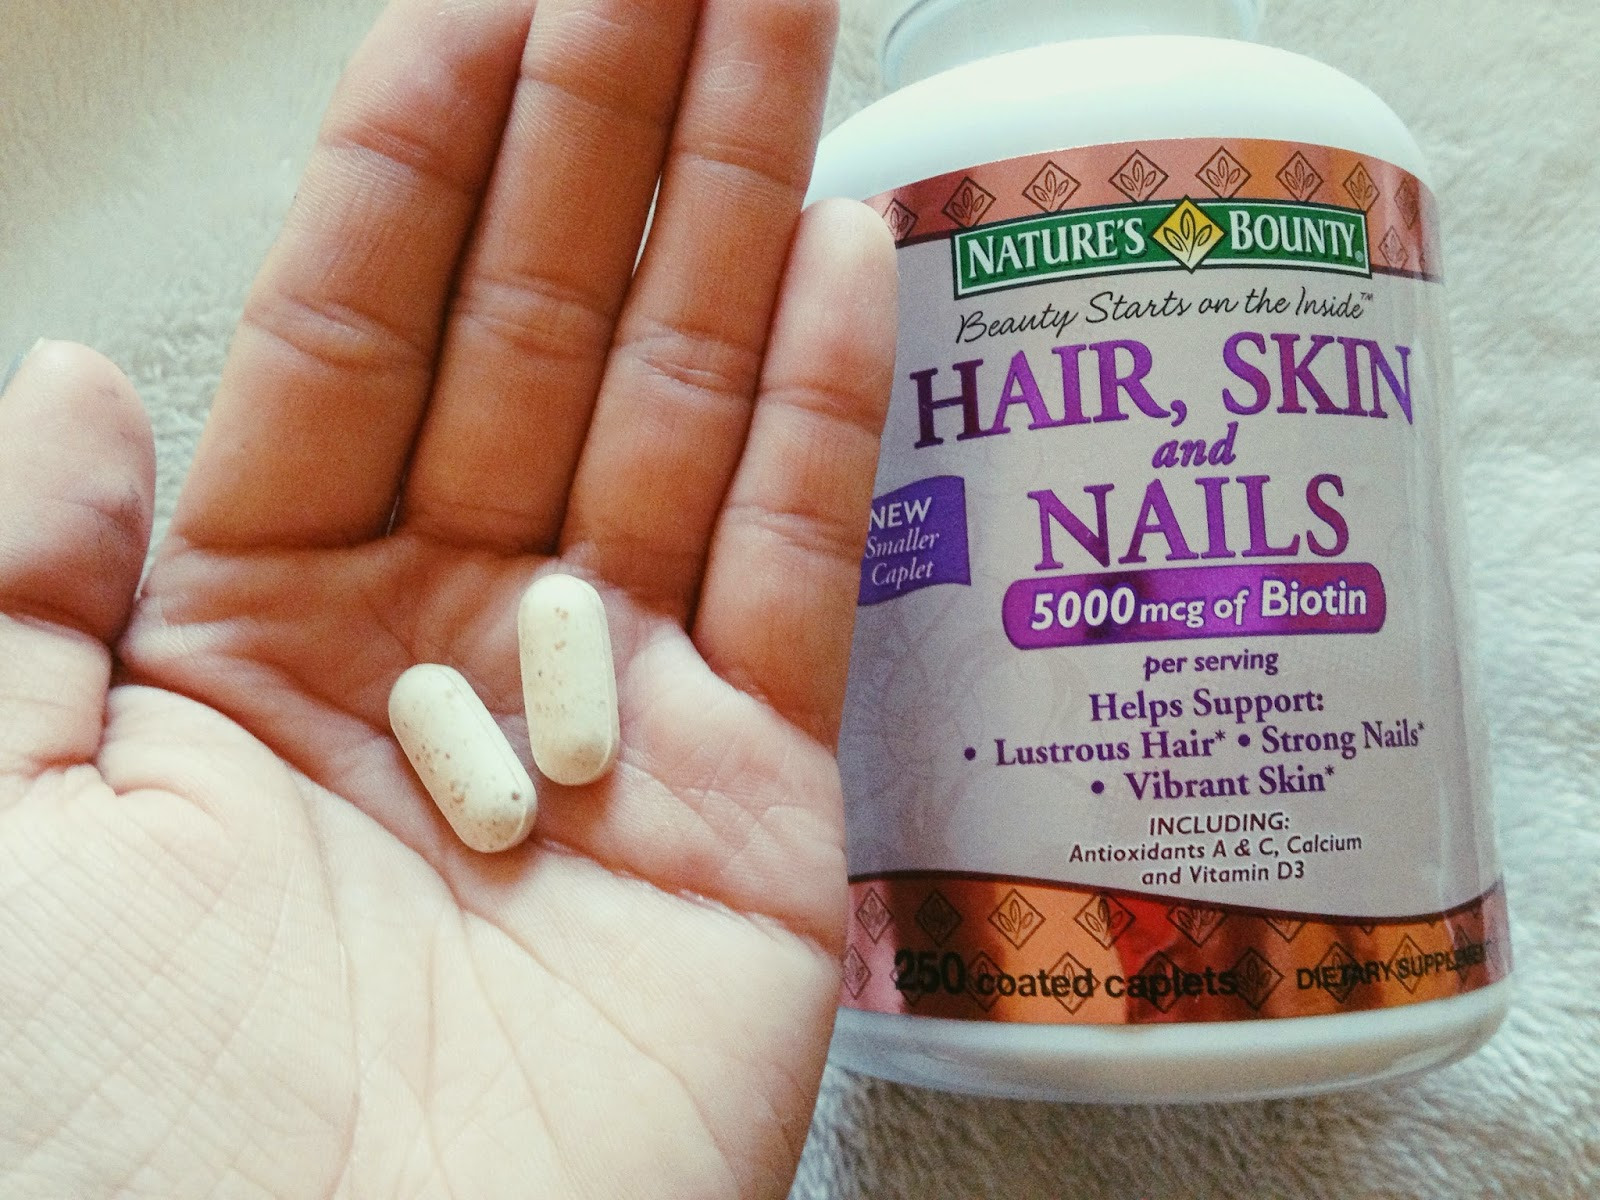 Nature S Bounty Hair Skin And Nails 5000 Mcg Of Biotin Side Effects ...